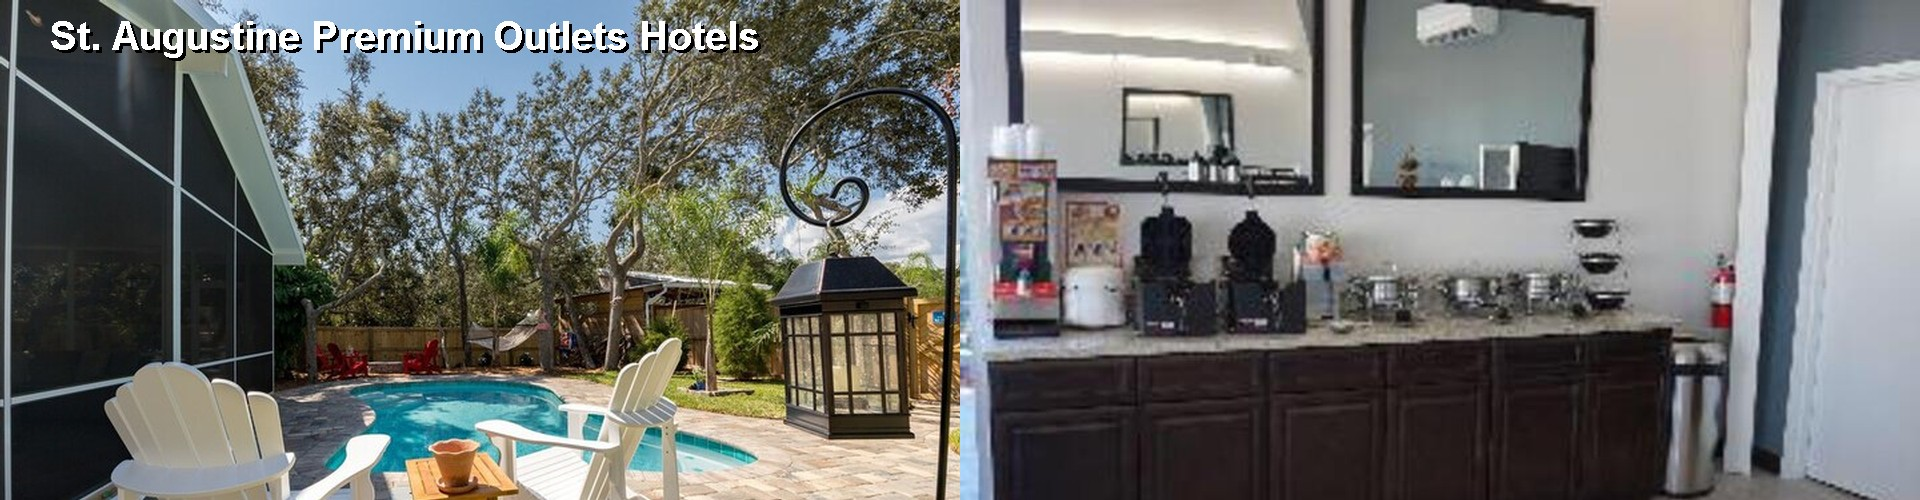 5 Best Hotels near St. Augustine Premium Outlets